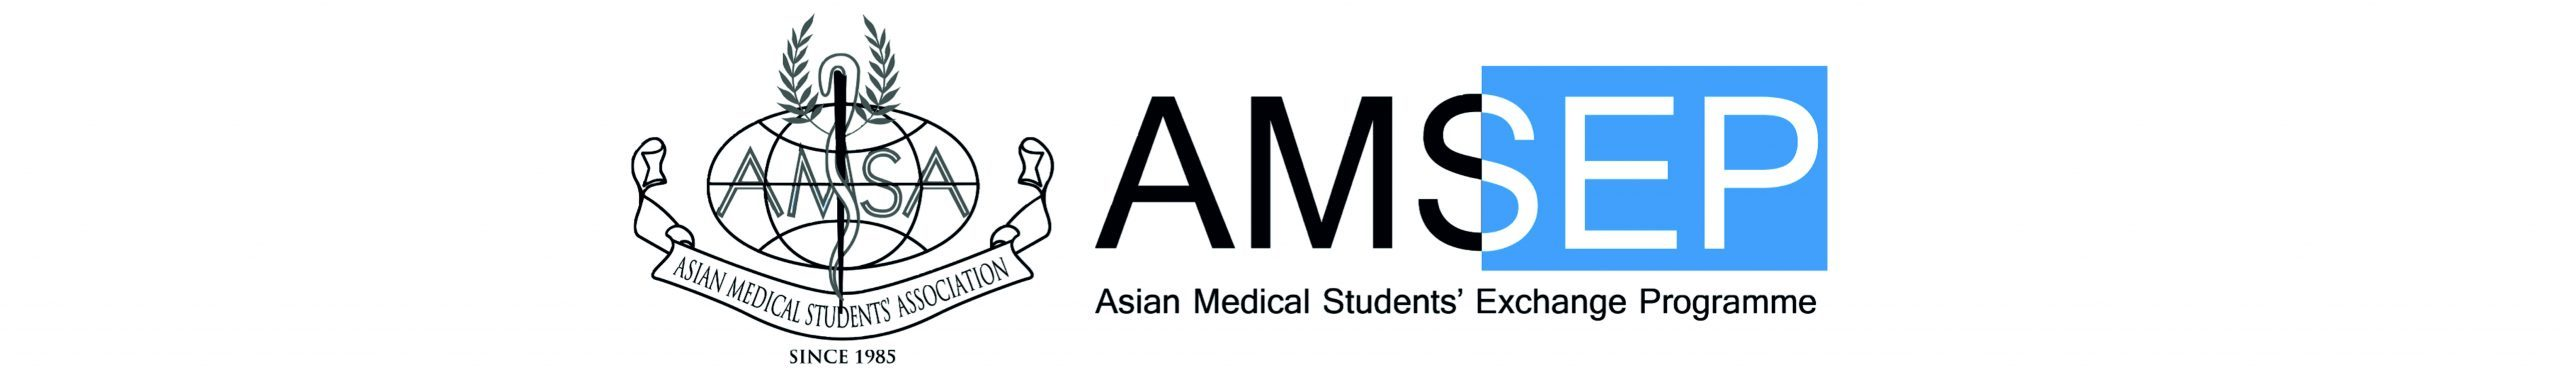 AMSEP INTERNATIONAL